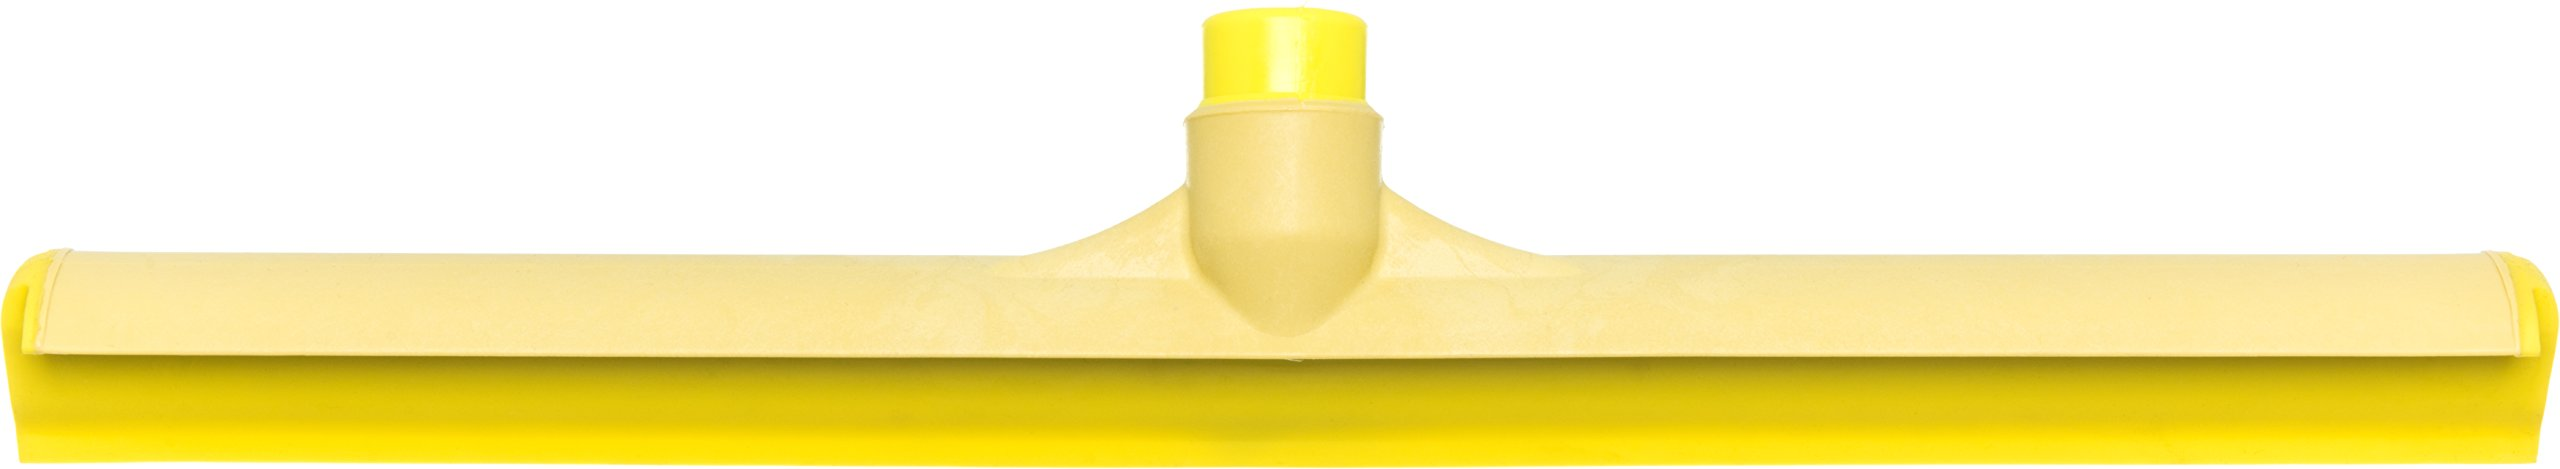 Carlisle 3656704 Solid One-Piece Foam Rubber Head Floor Squeegee, 20'' Length, Yellow (Case of 6) by Carlisle (Image #7)